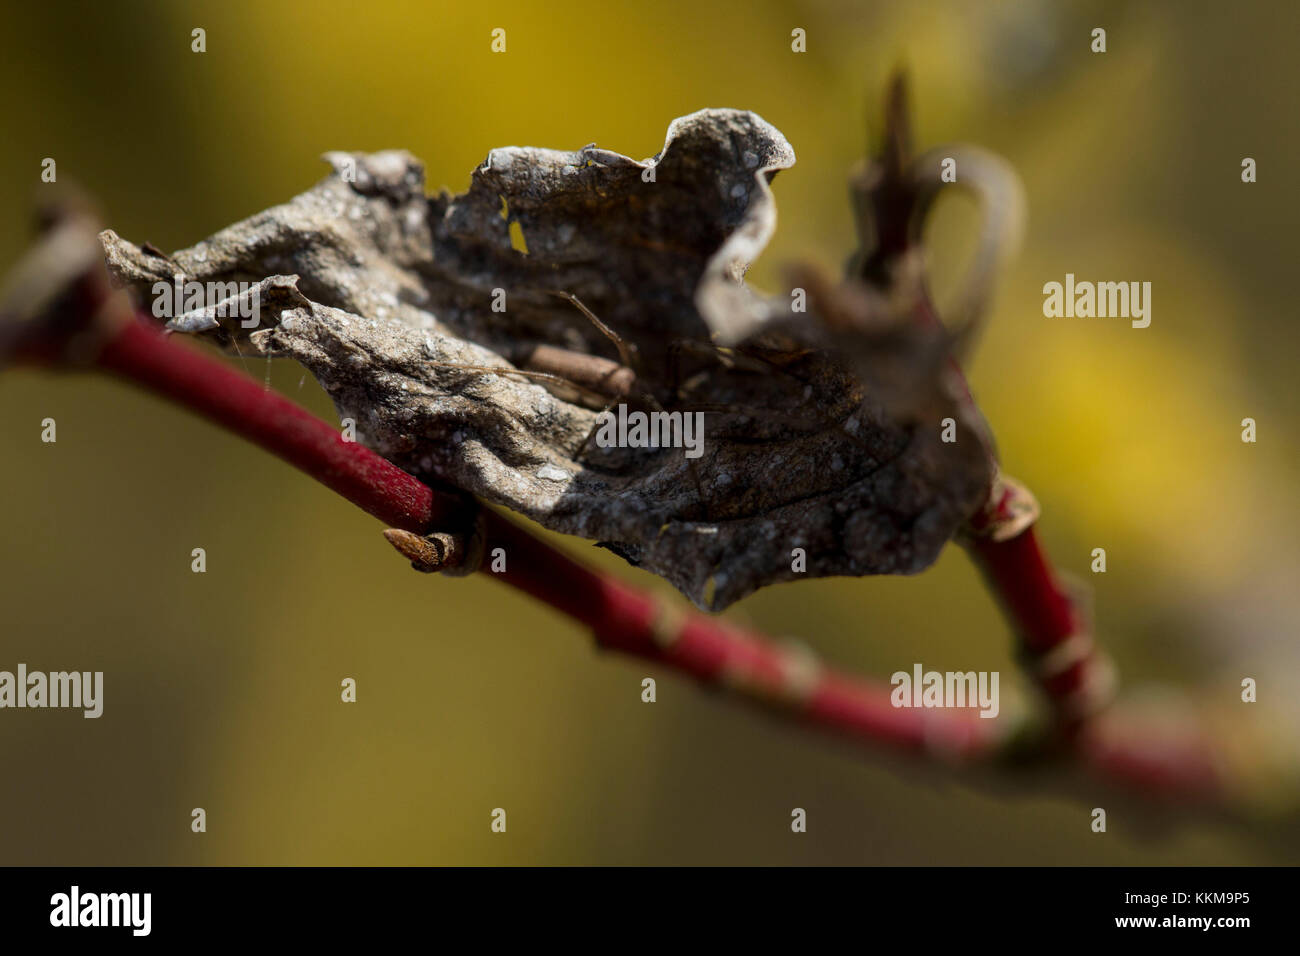 Twig with leaf and spider, close-up, - Stock Image